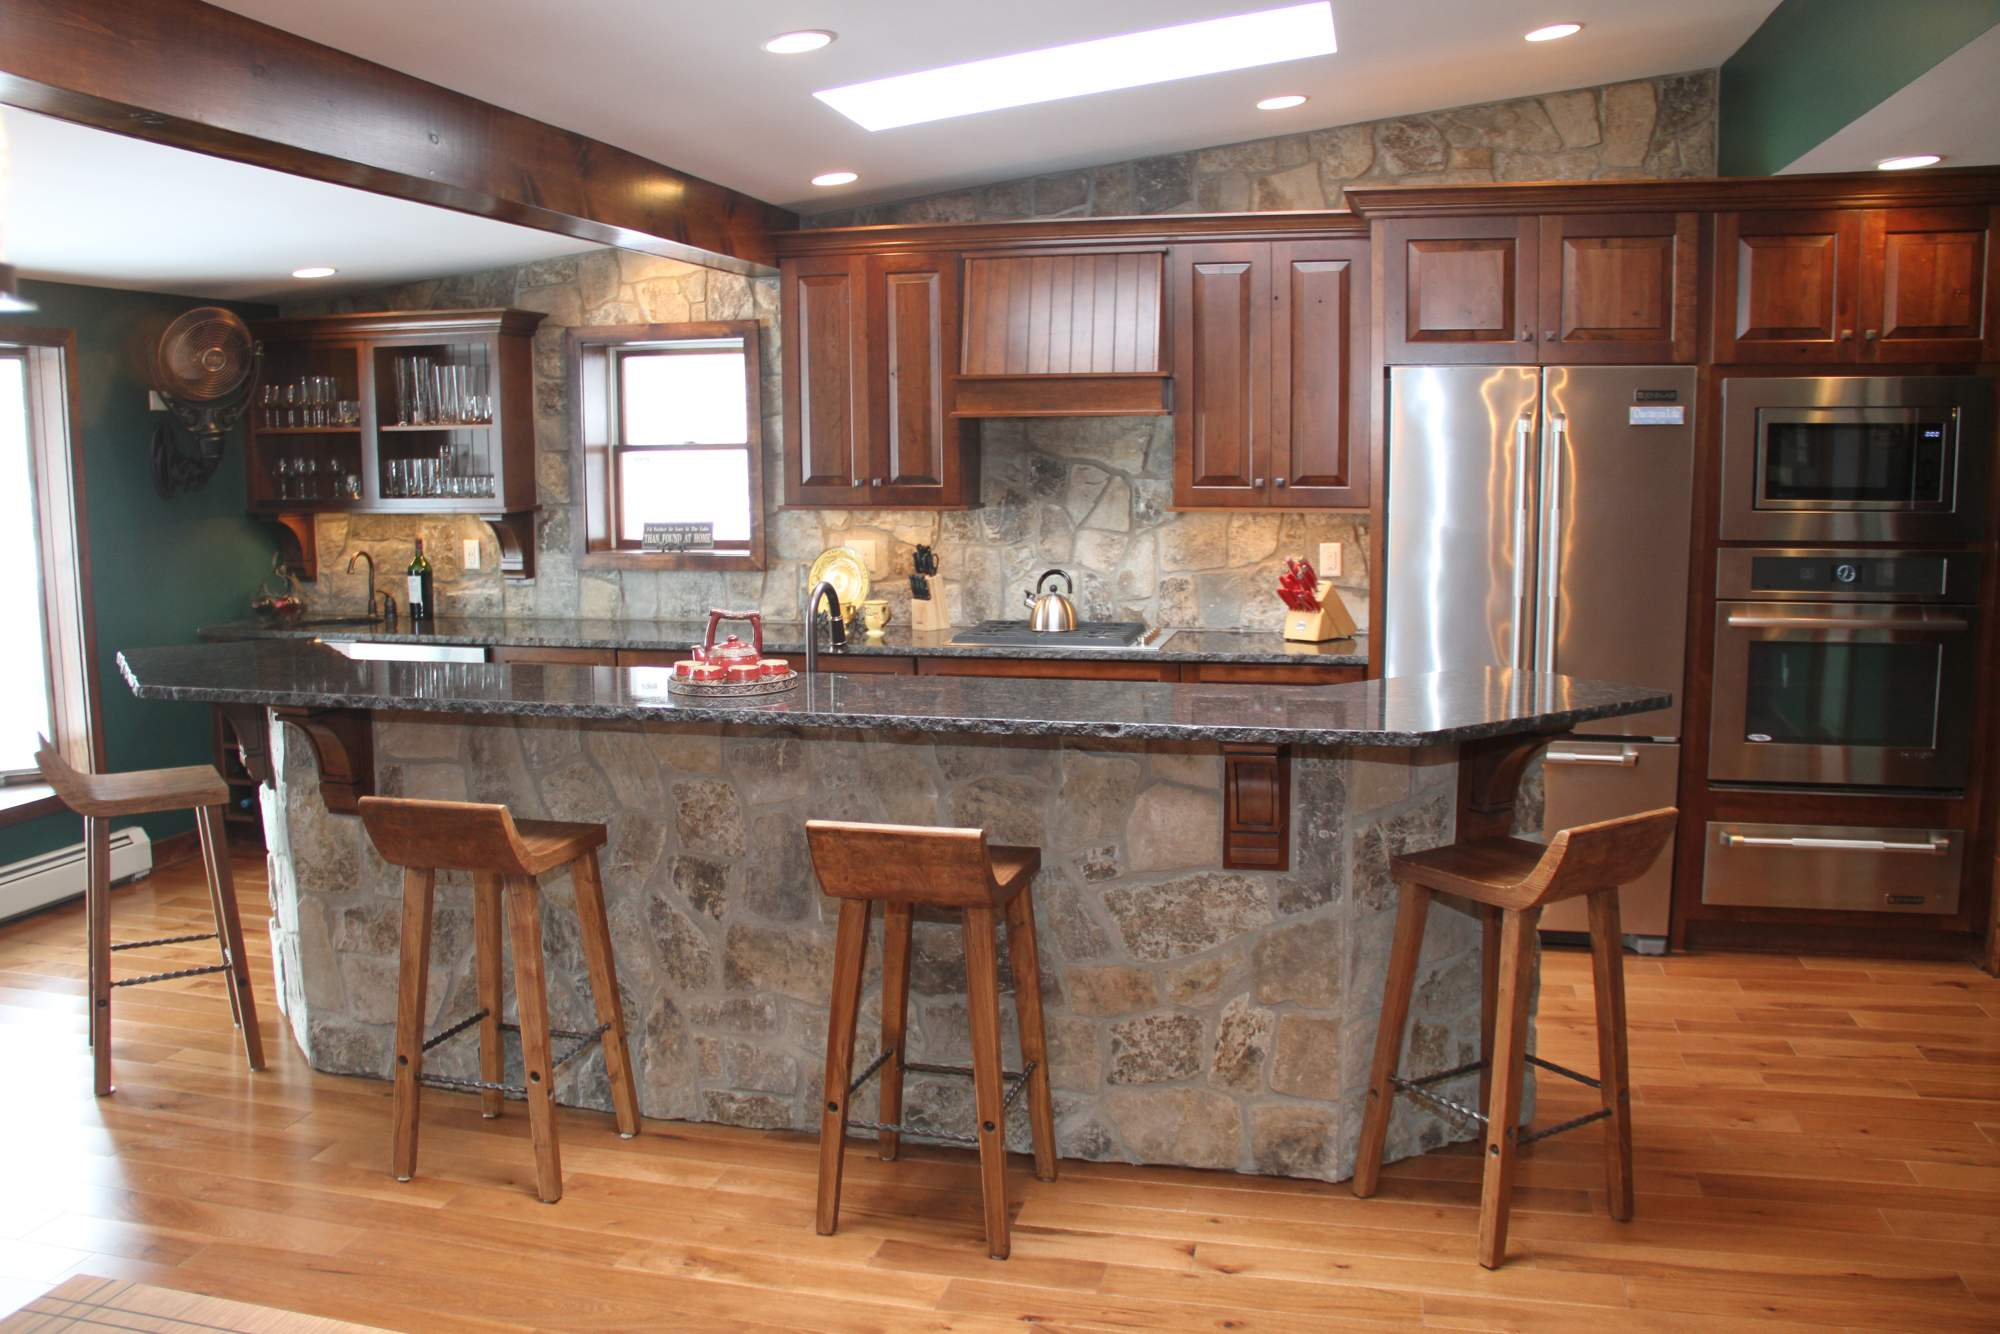 Rustic lakehouse kitchen kitchens projects repp renovations buffalo ny design build Kitchen design lake house